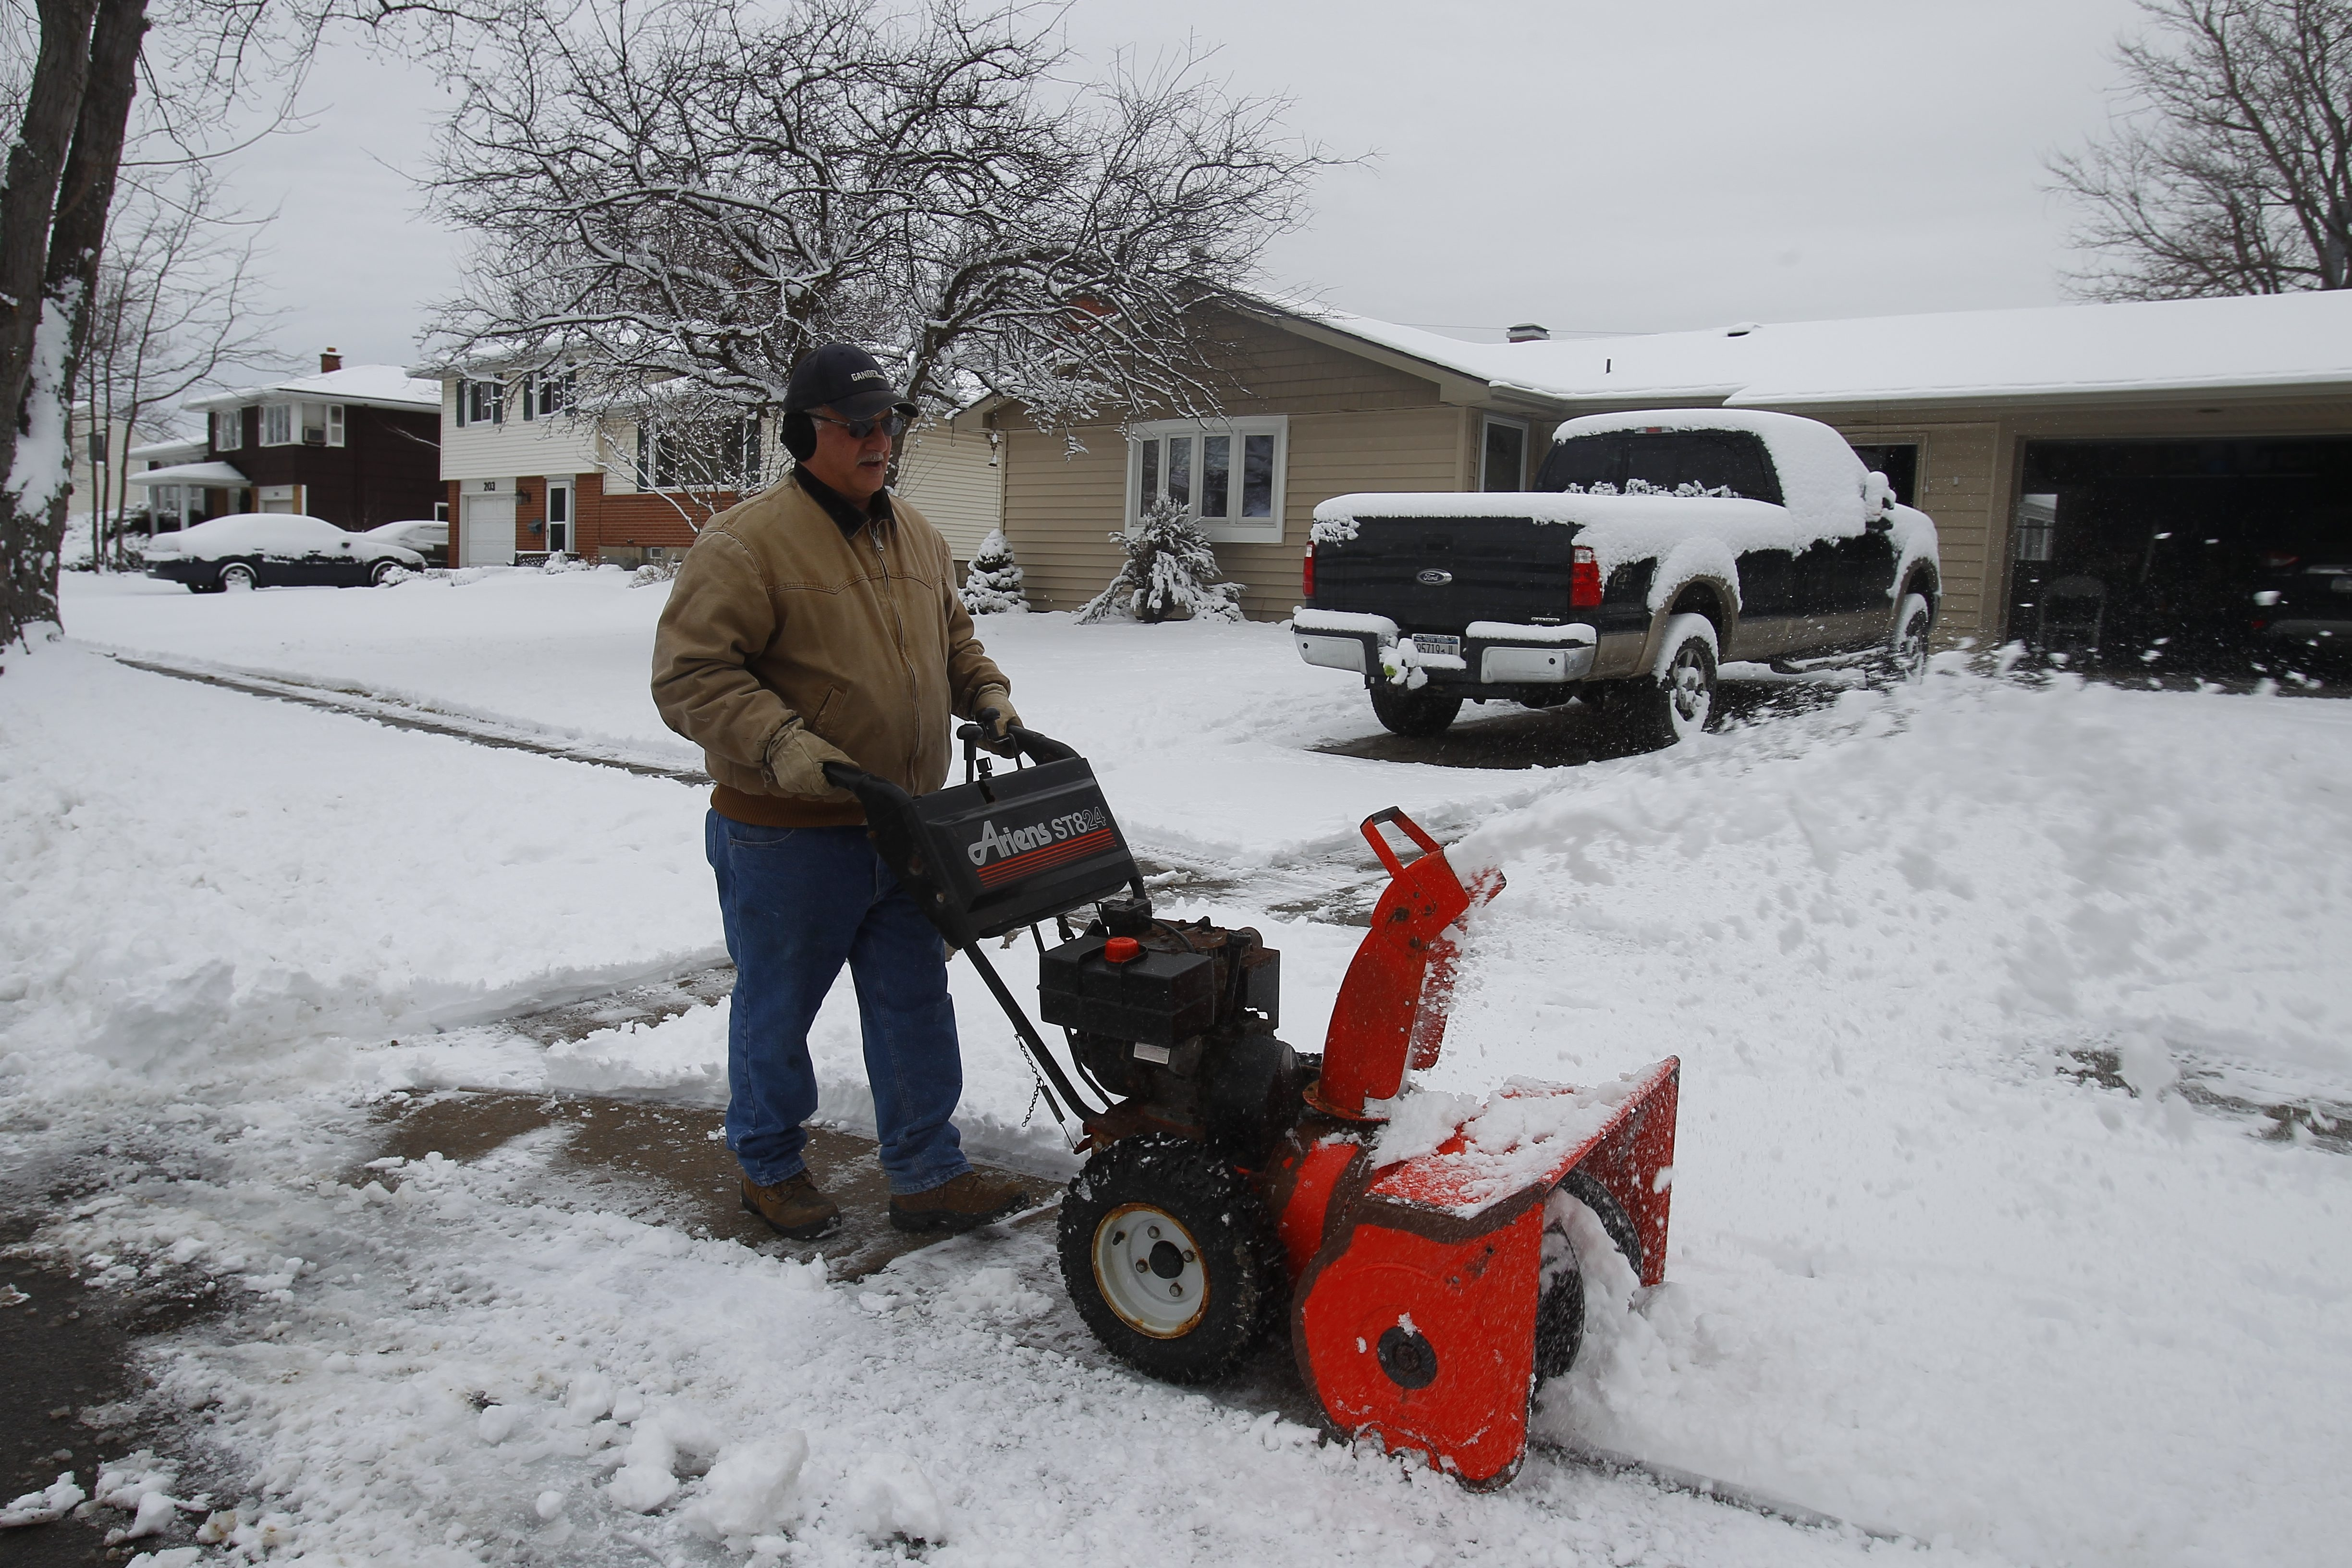 Peter Frank snowblows in the Town of Tonawanda Sunday as Western New Yorkers awoke to another snowfall despite the fact that winter officially ended March 20.